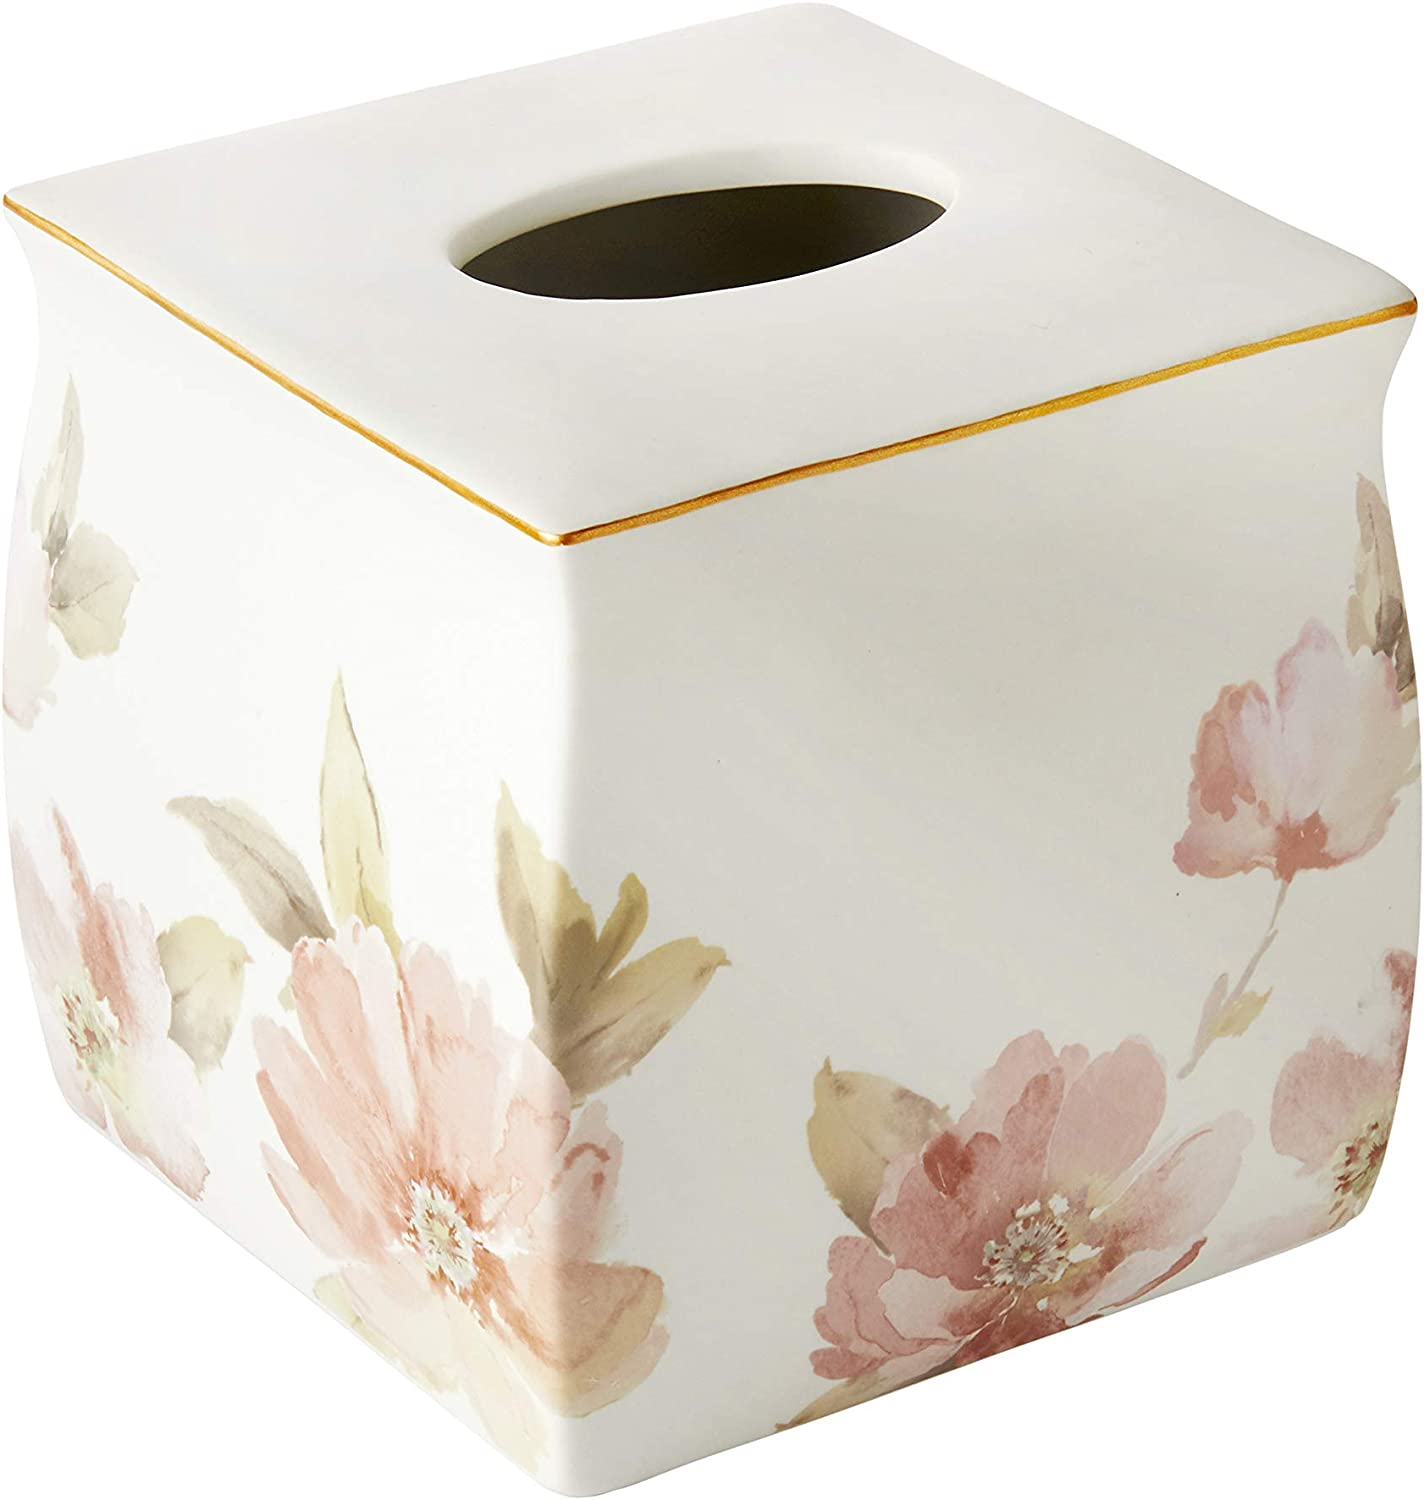 SKL HOME by Saturday Knight Ltd. Max 84% OFF Import Misty Cover Floral Box Tissue